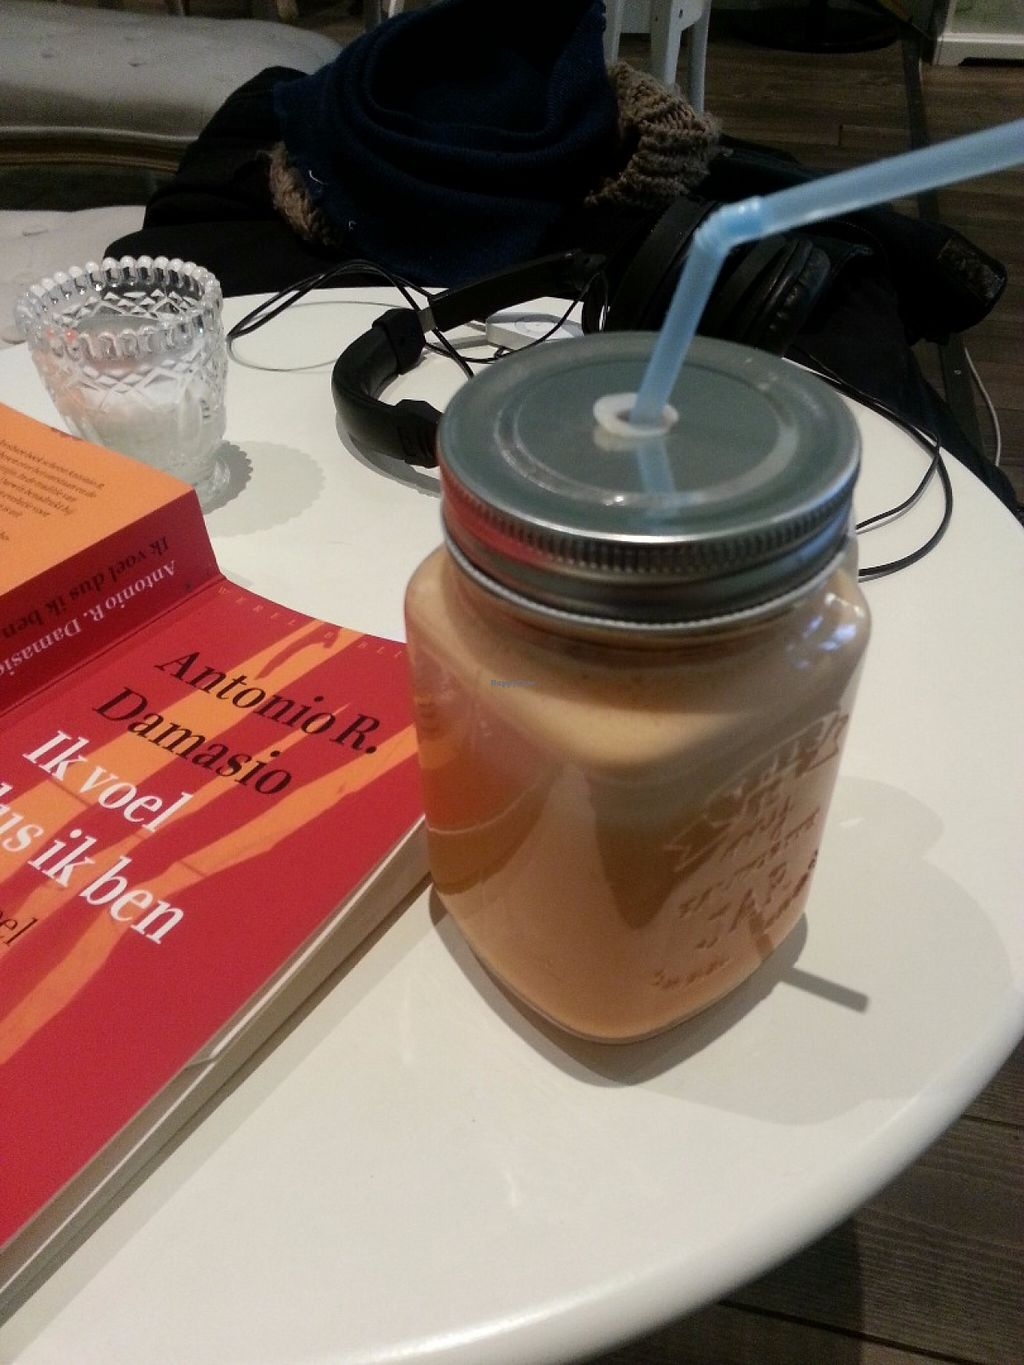 """Photo of Majesteit Taart  by <a href=""""/members/profile/MargoMustert"""">MargoMustert</a> <br/>Lovely sweet potato juice! It was cold pressed and she added ginger and cinnamon. I didn't know you could cold press sweet potato yet, but this was delicous!! <br/> May 29, 2016  - <a href='/contact/abuse/image/73433/151312'>Report</a>"""